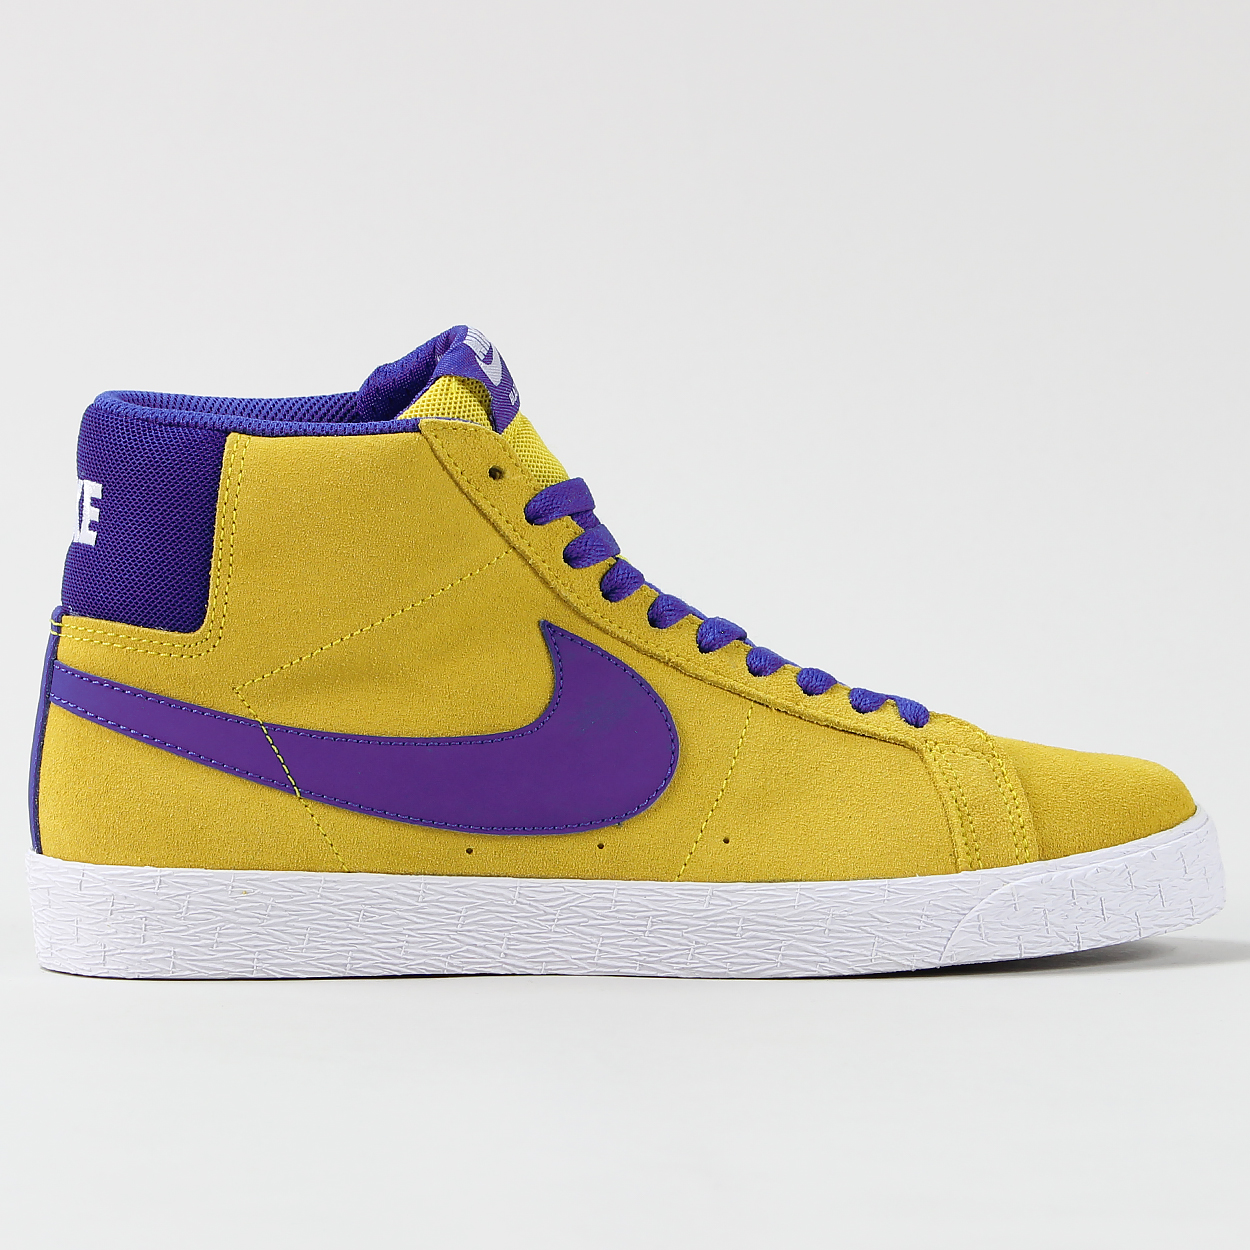 new product 65dc2 f2b0e Nike SB Blazer Zoom Mid Shoes Tour Yellow Blue White ...